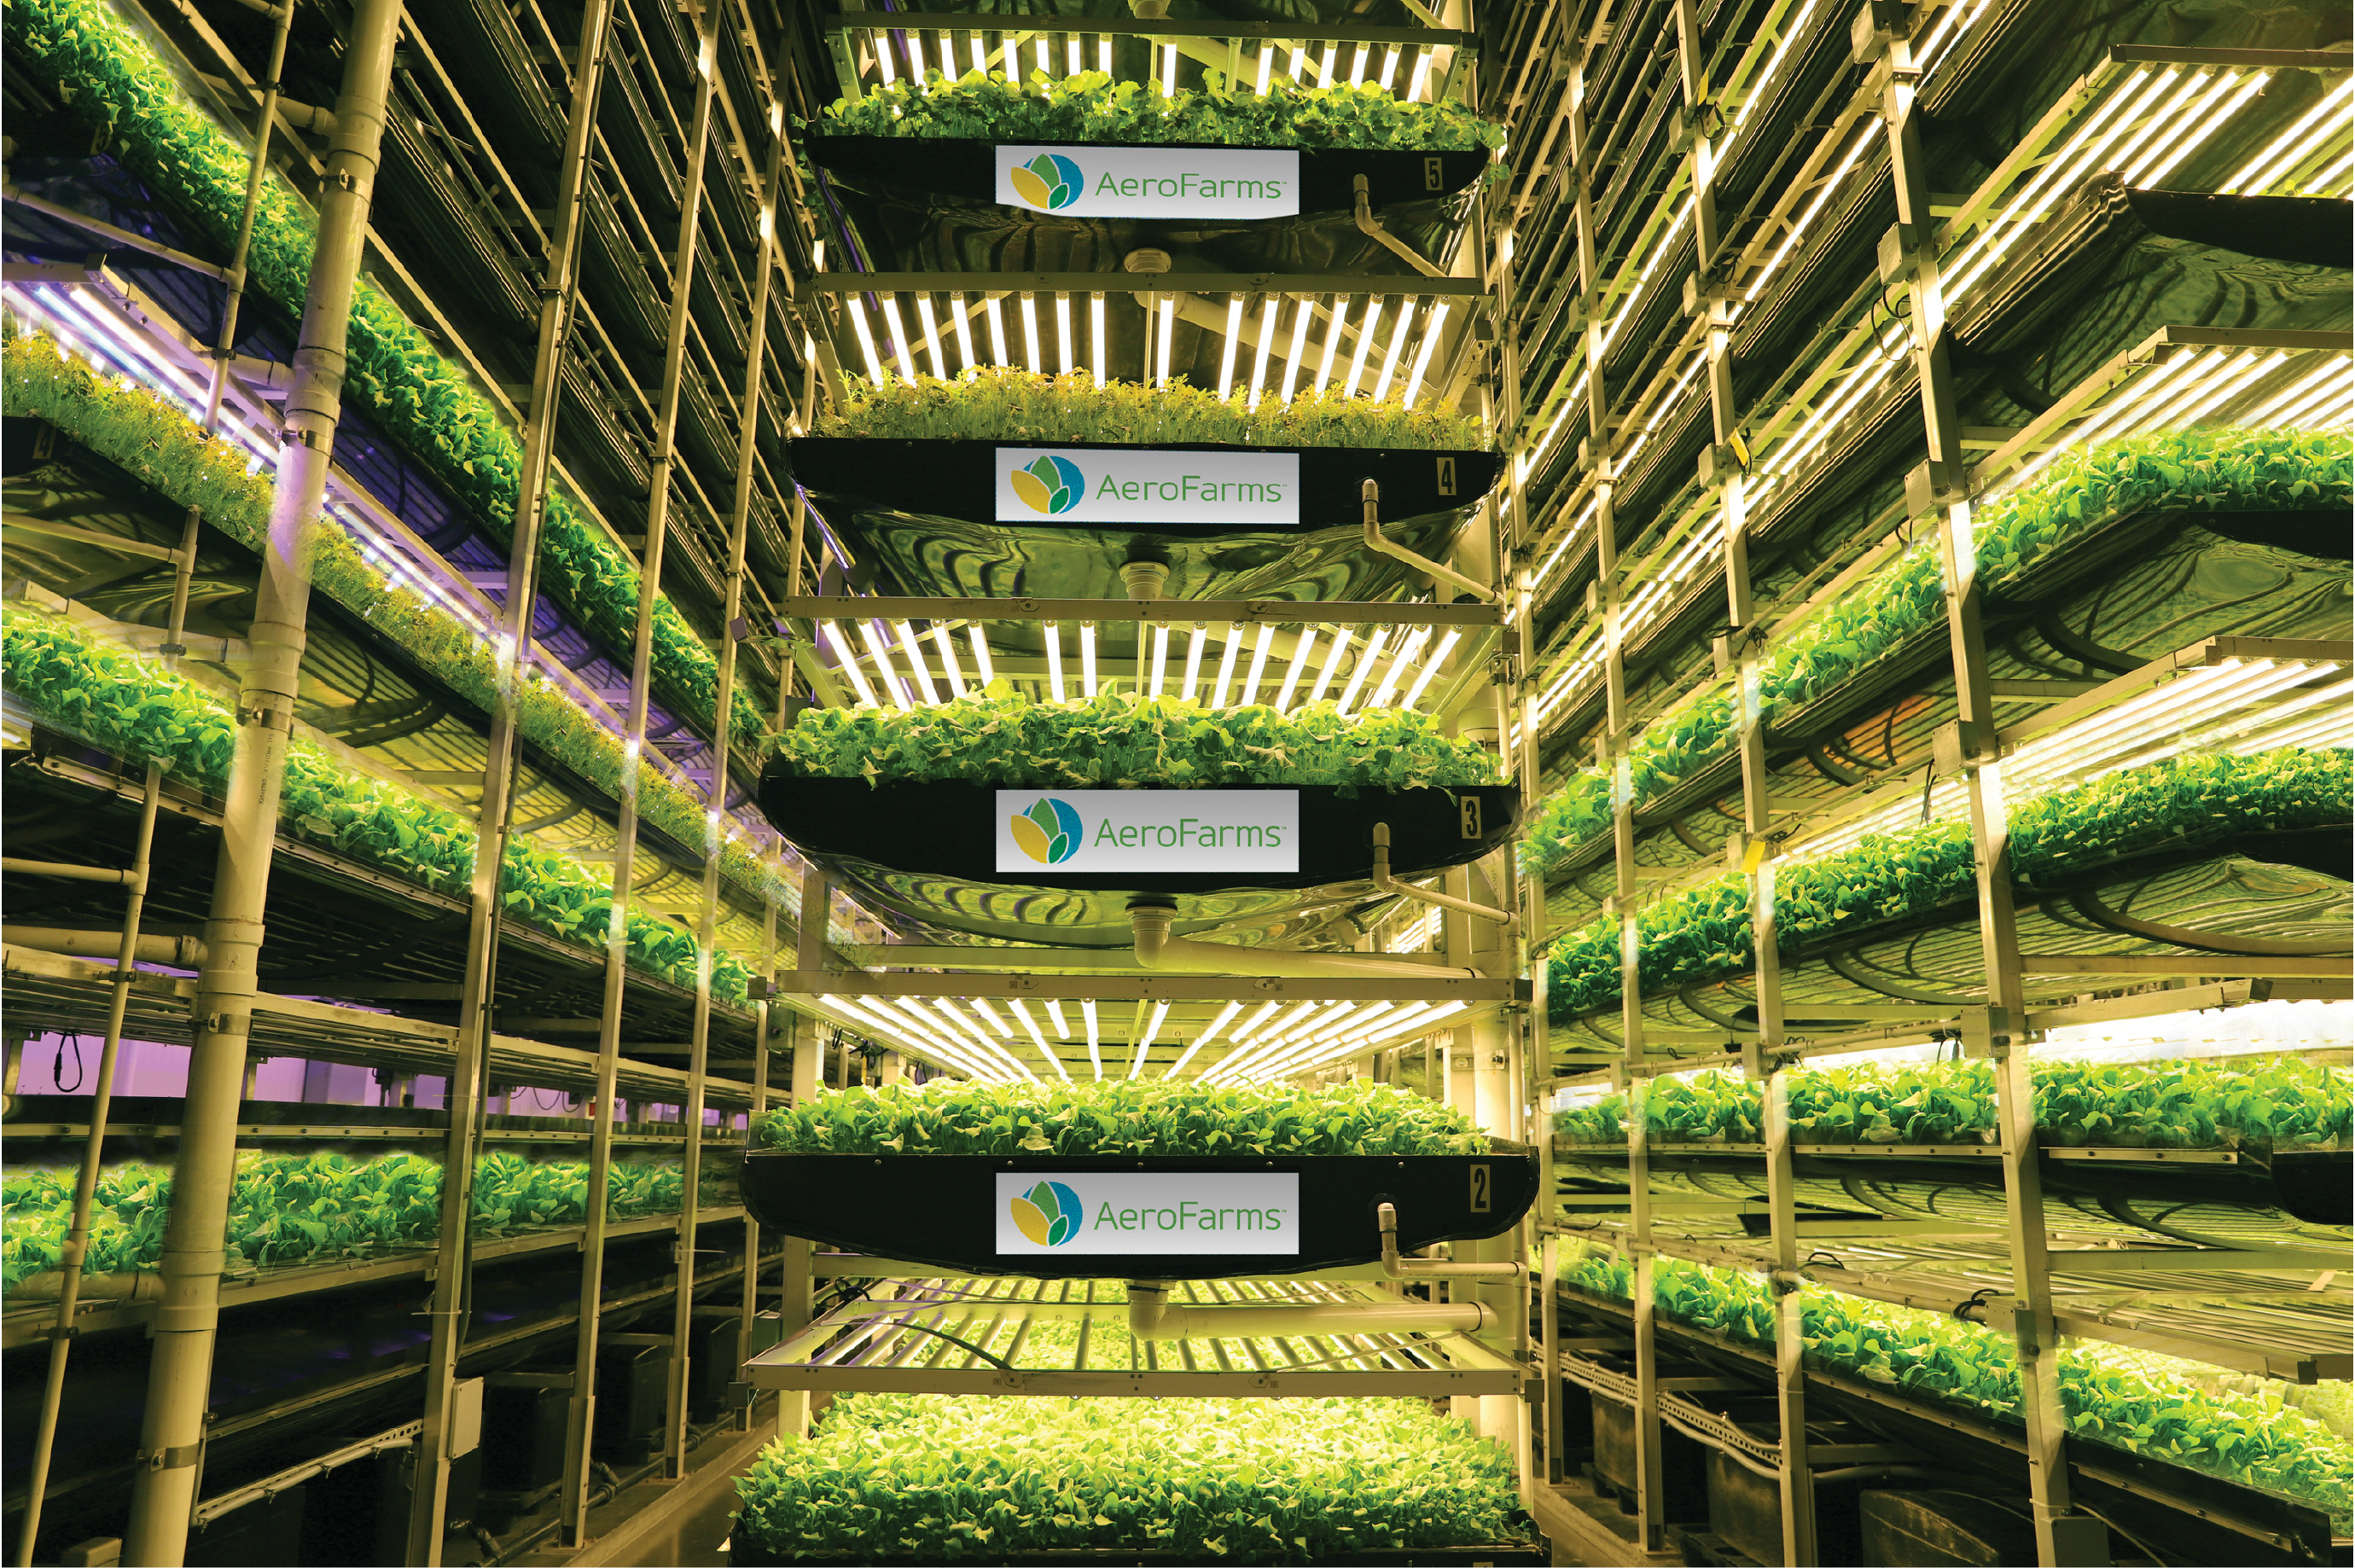 Vertical Farming Could Help Us Build A More Equitable Food System